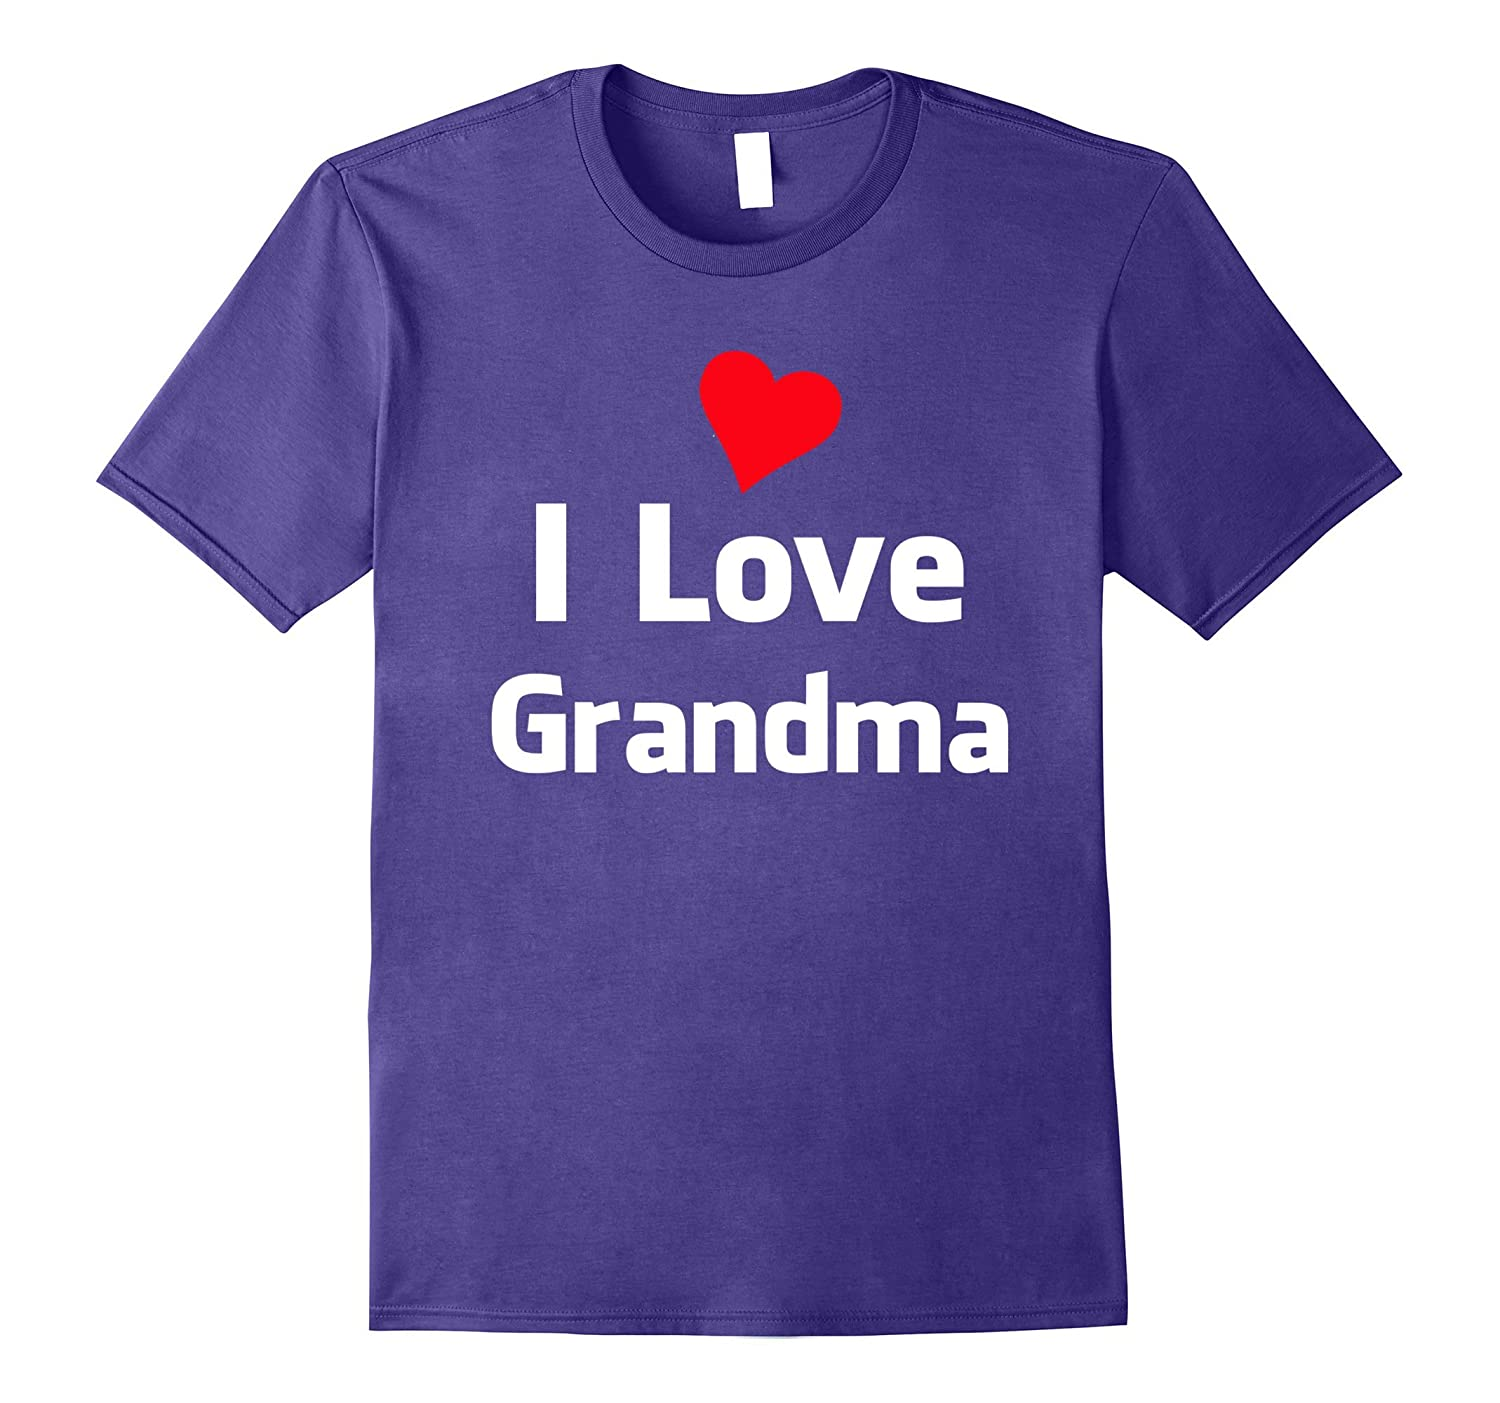 Cute I LOVE GRANDMA t-shirt gift idea for kids to wear-Vaci